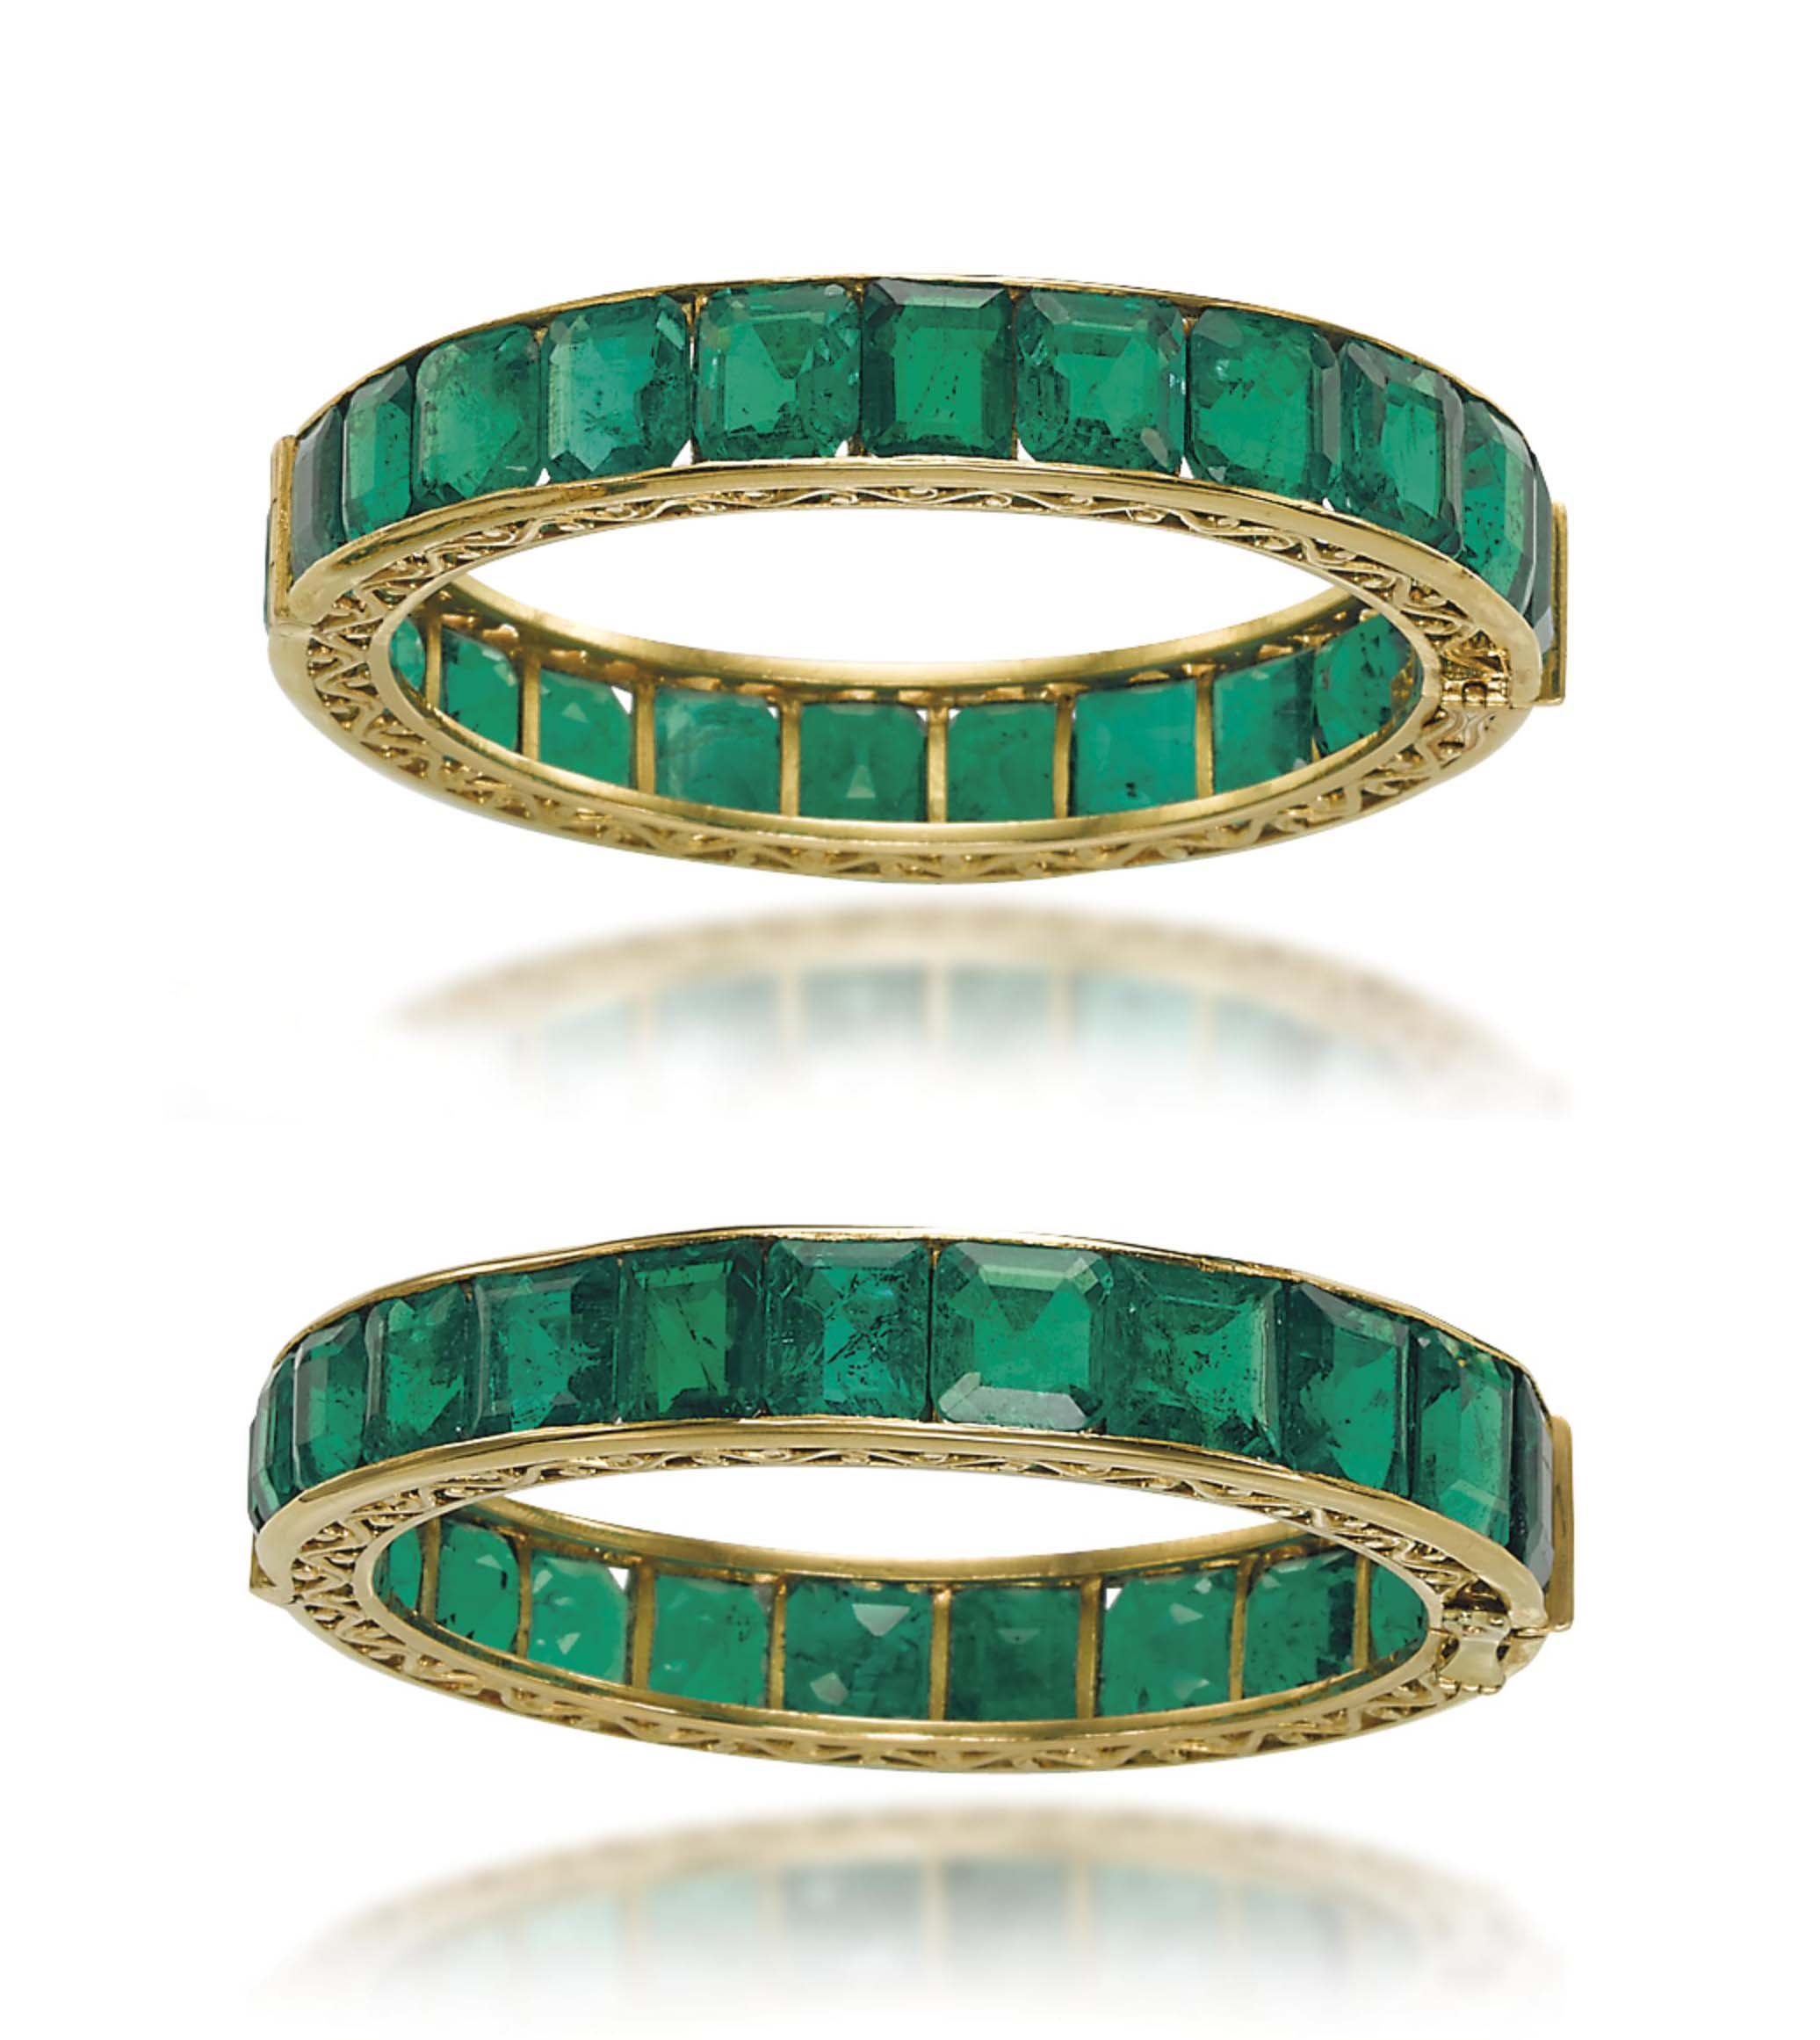 bangle south diamonds diamond emerald india antique jewels rkr uncut with gold bangles